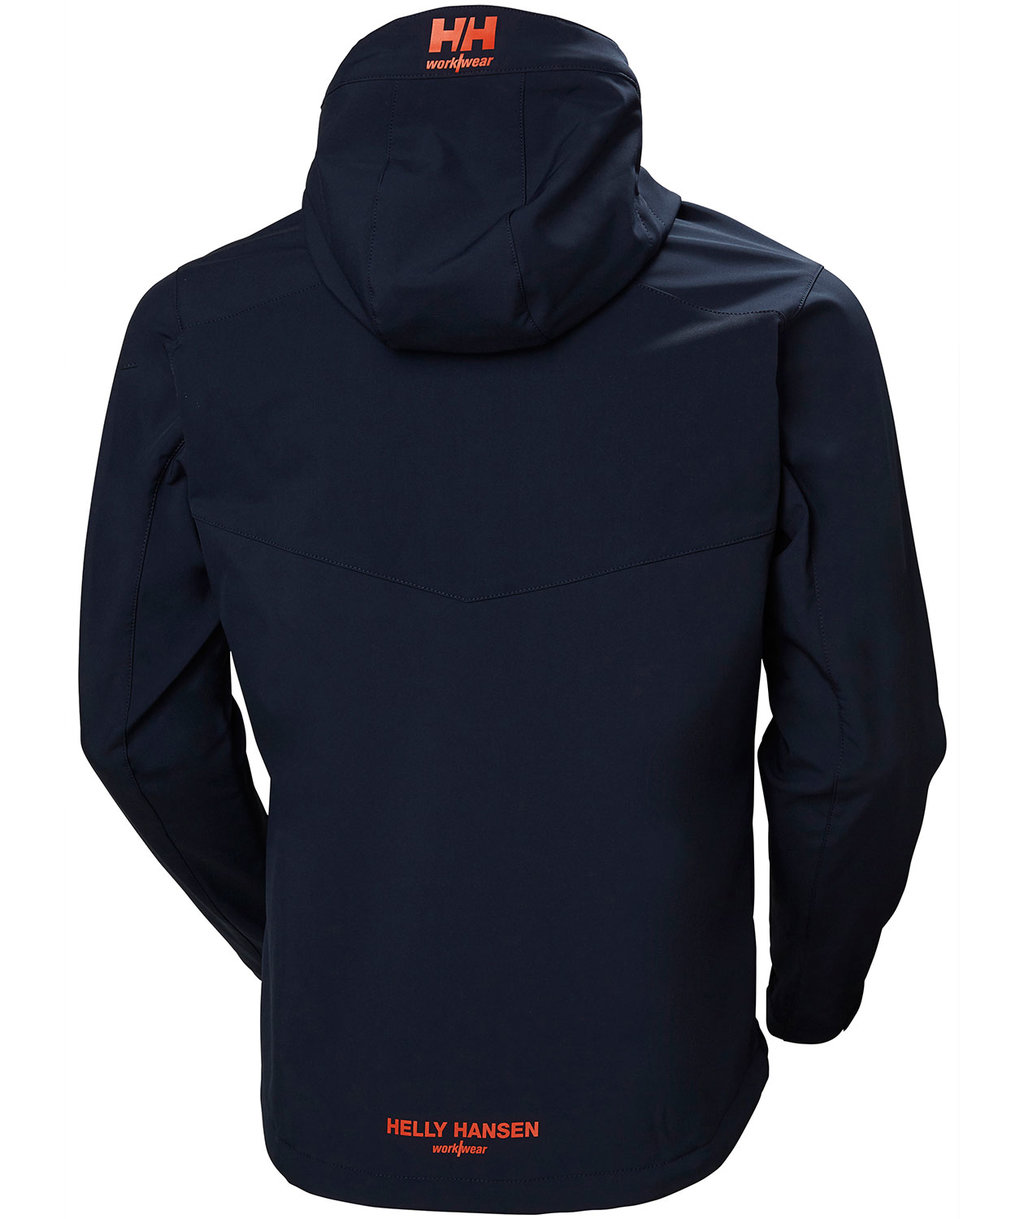 Helly Hansen WW Chelsea Evolution softshelljacka med huva, Navy